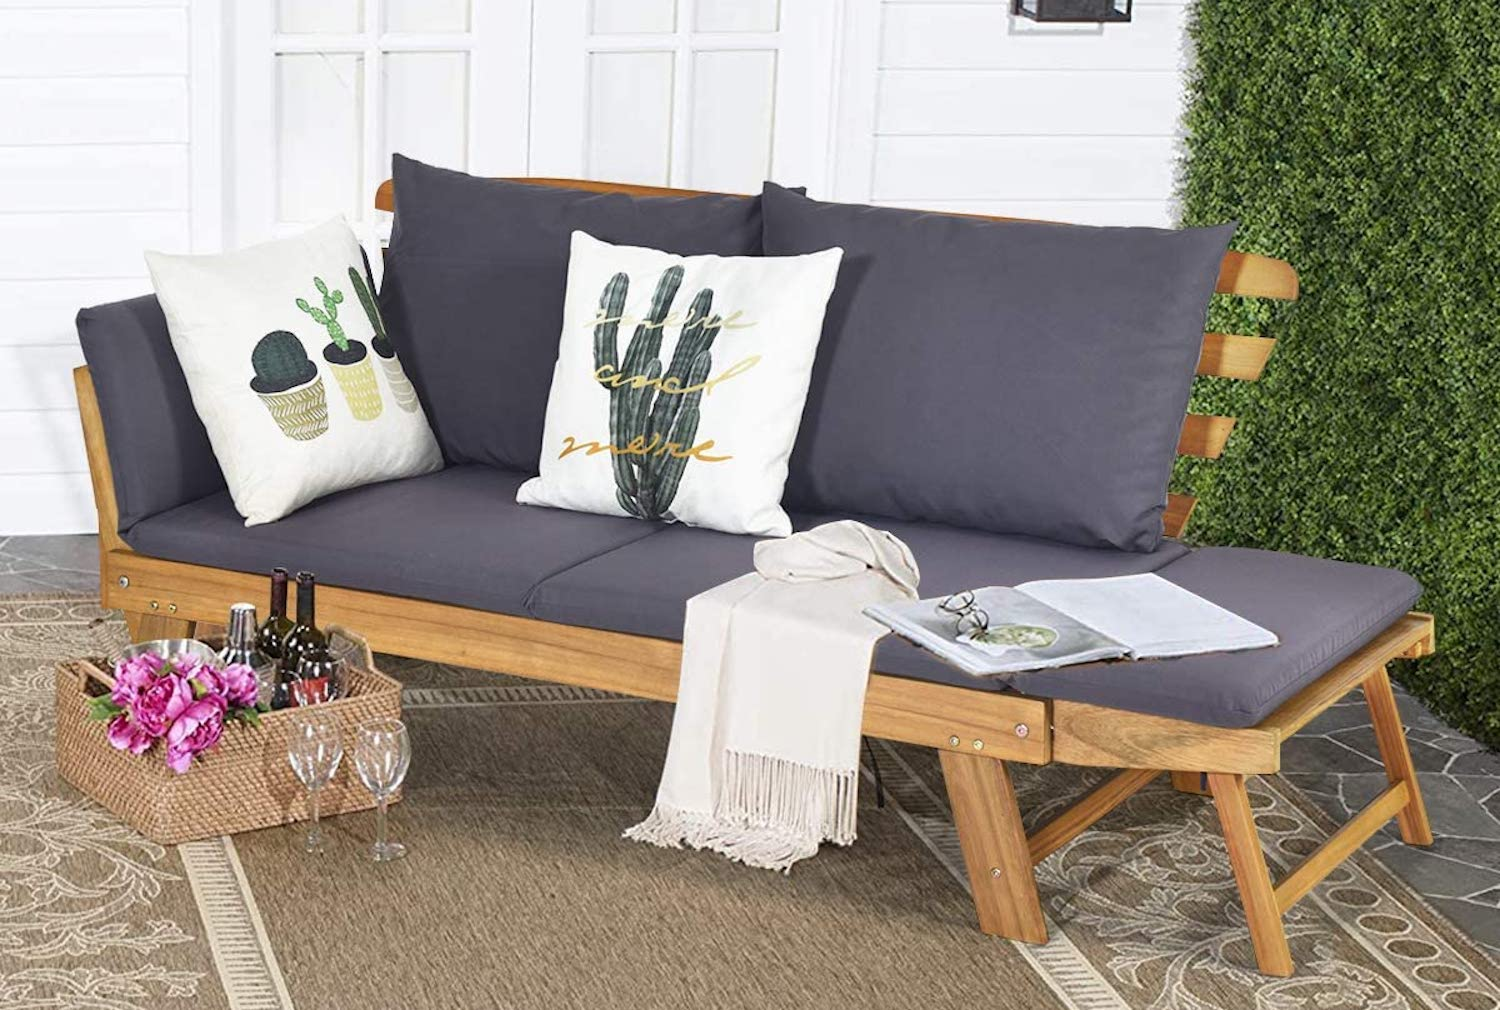 A gray patio sofa with a wood frame and white pillows on top